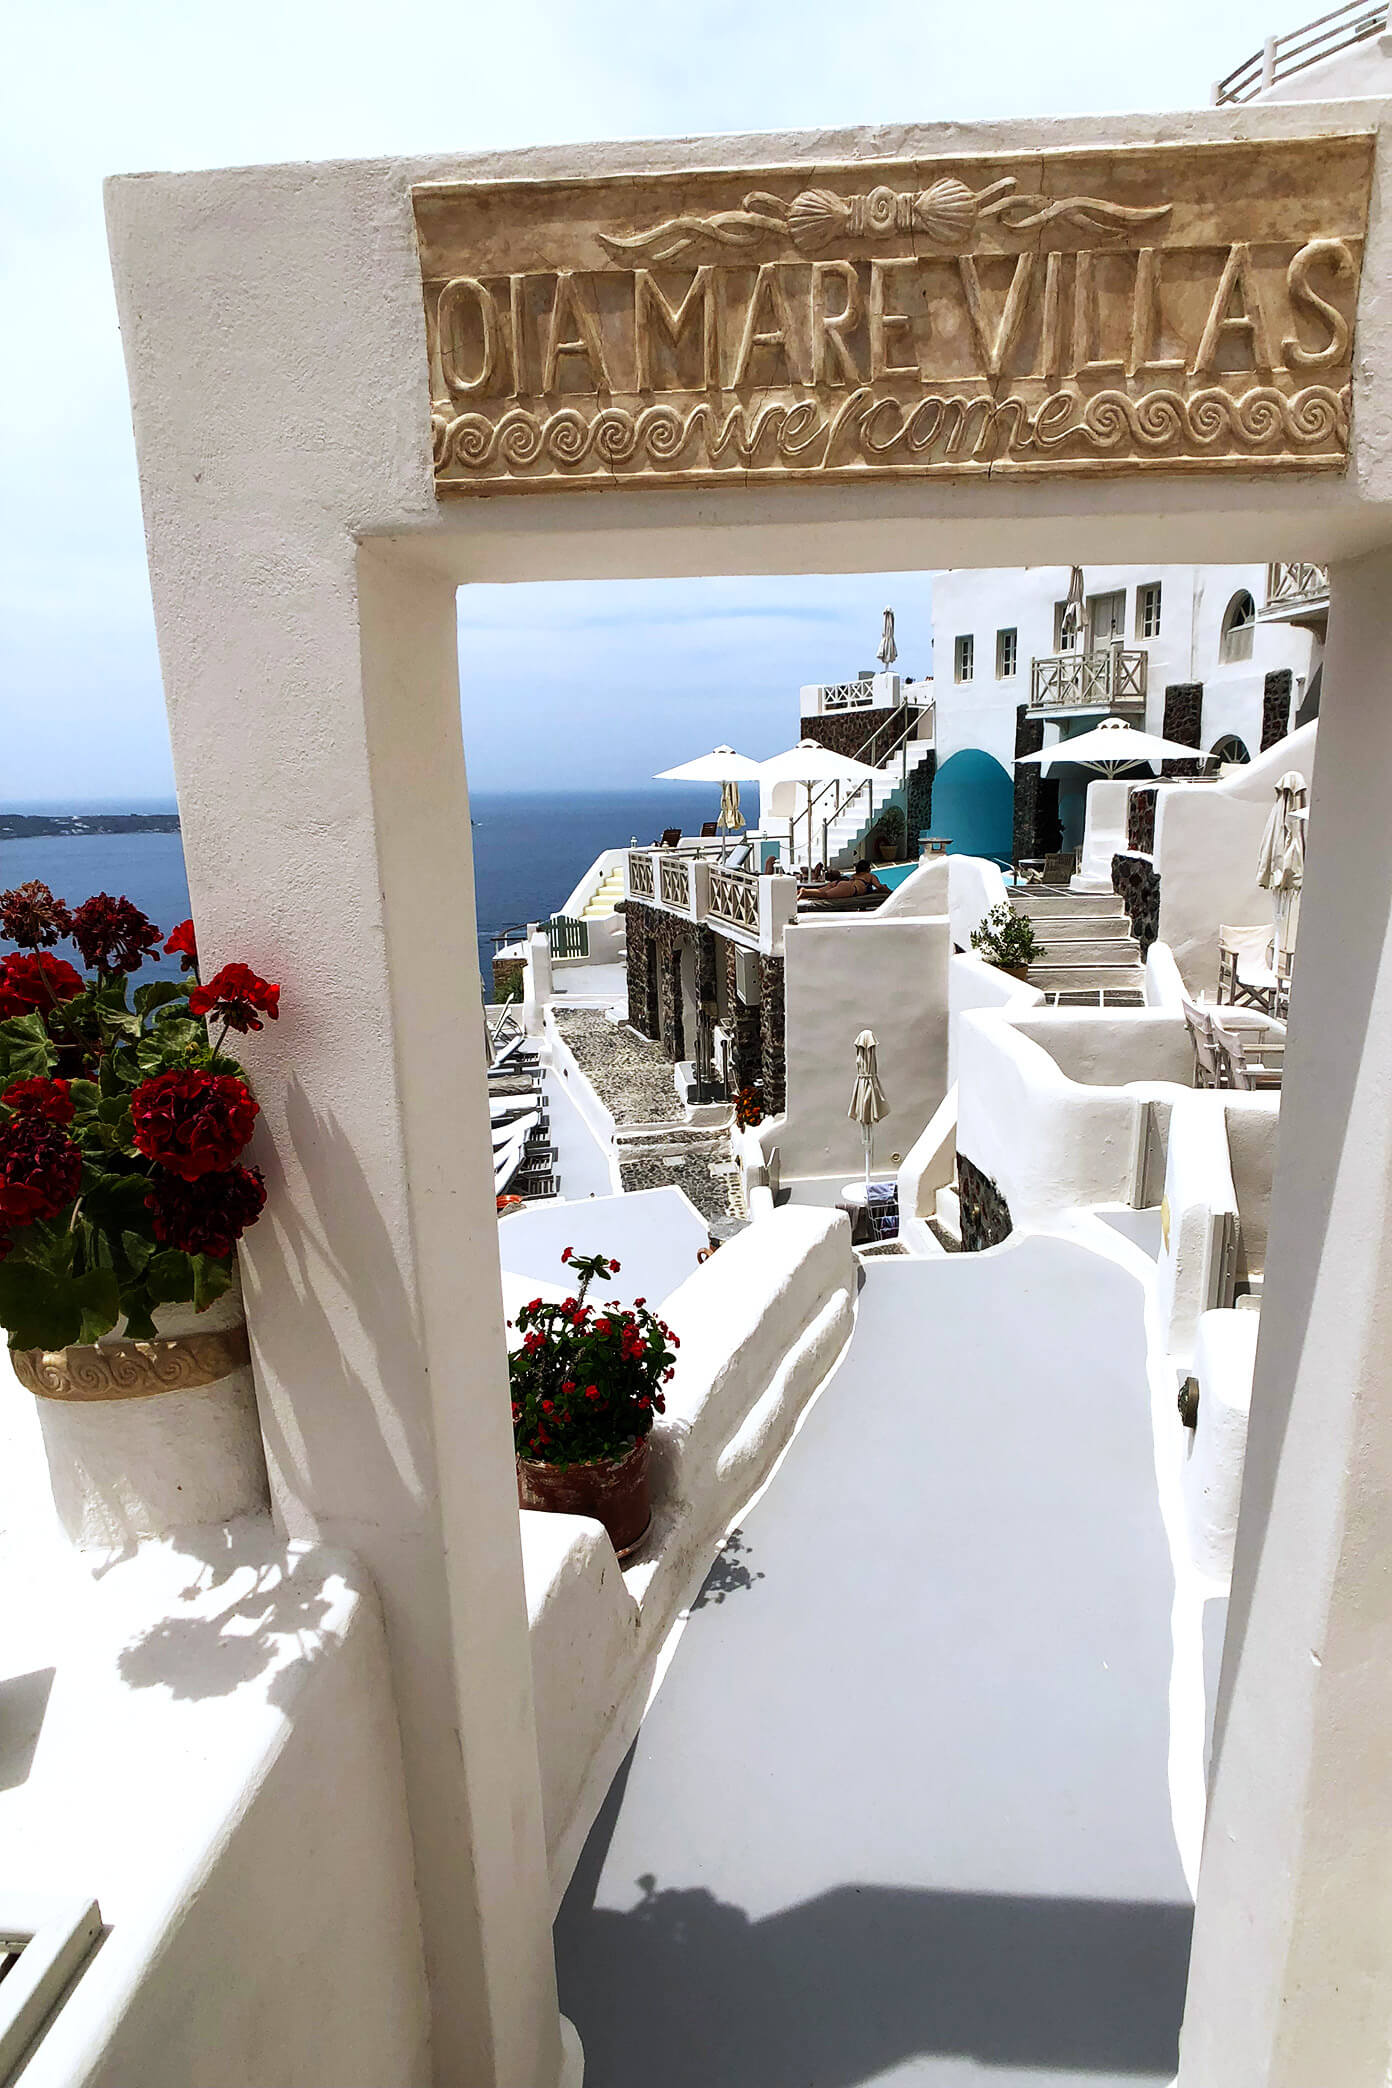 Oia Mare Villas in Santorini, Greece